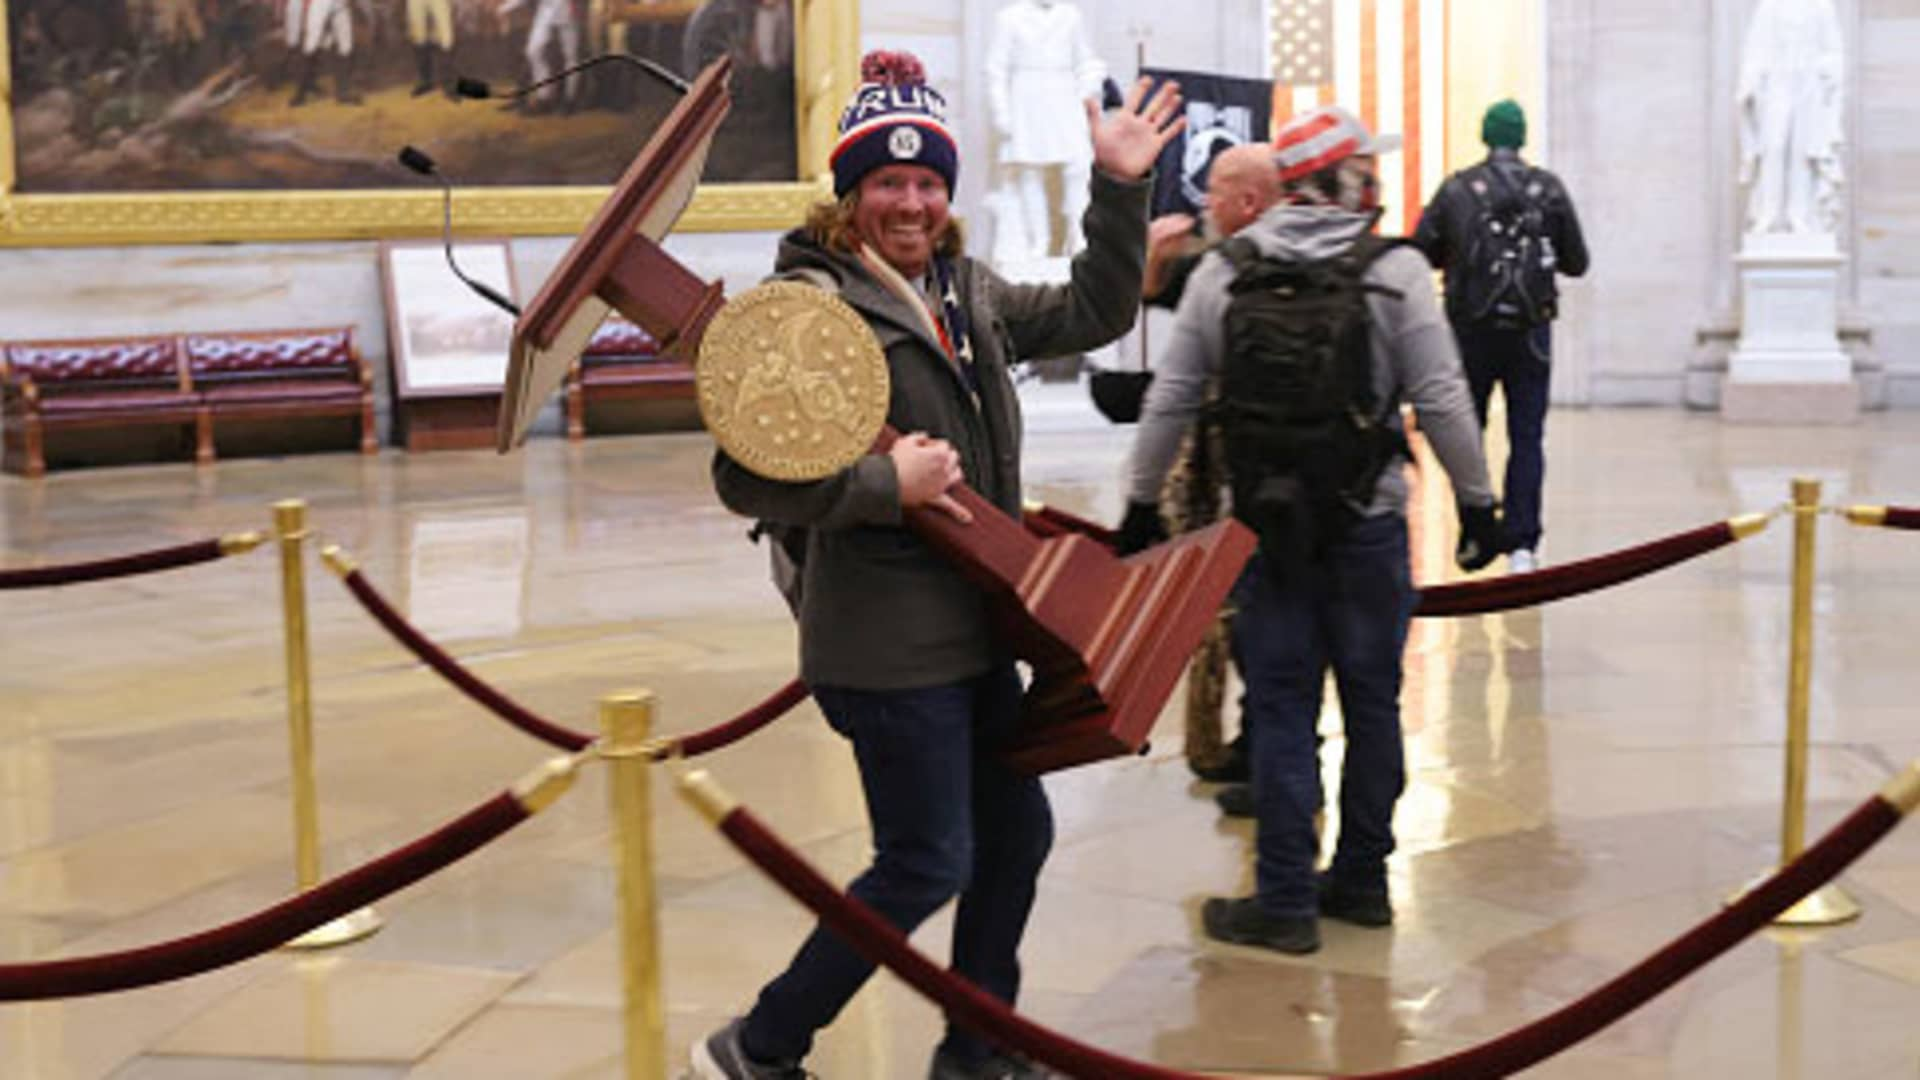 Protesters enter the U.S. Capitol Building on January 06, 2021 in Washington, DC. Congress held a joint session today to ratify President-elect Joe Biden's 306-232 Electoral College win over President Donald Trump.